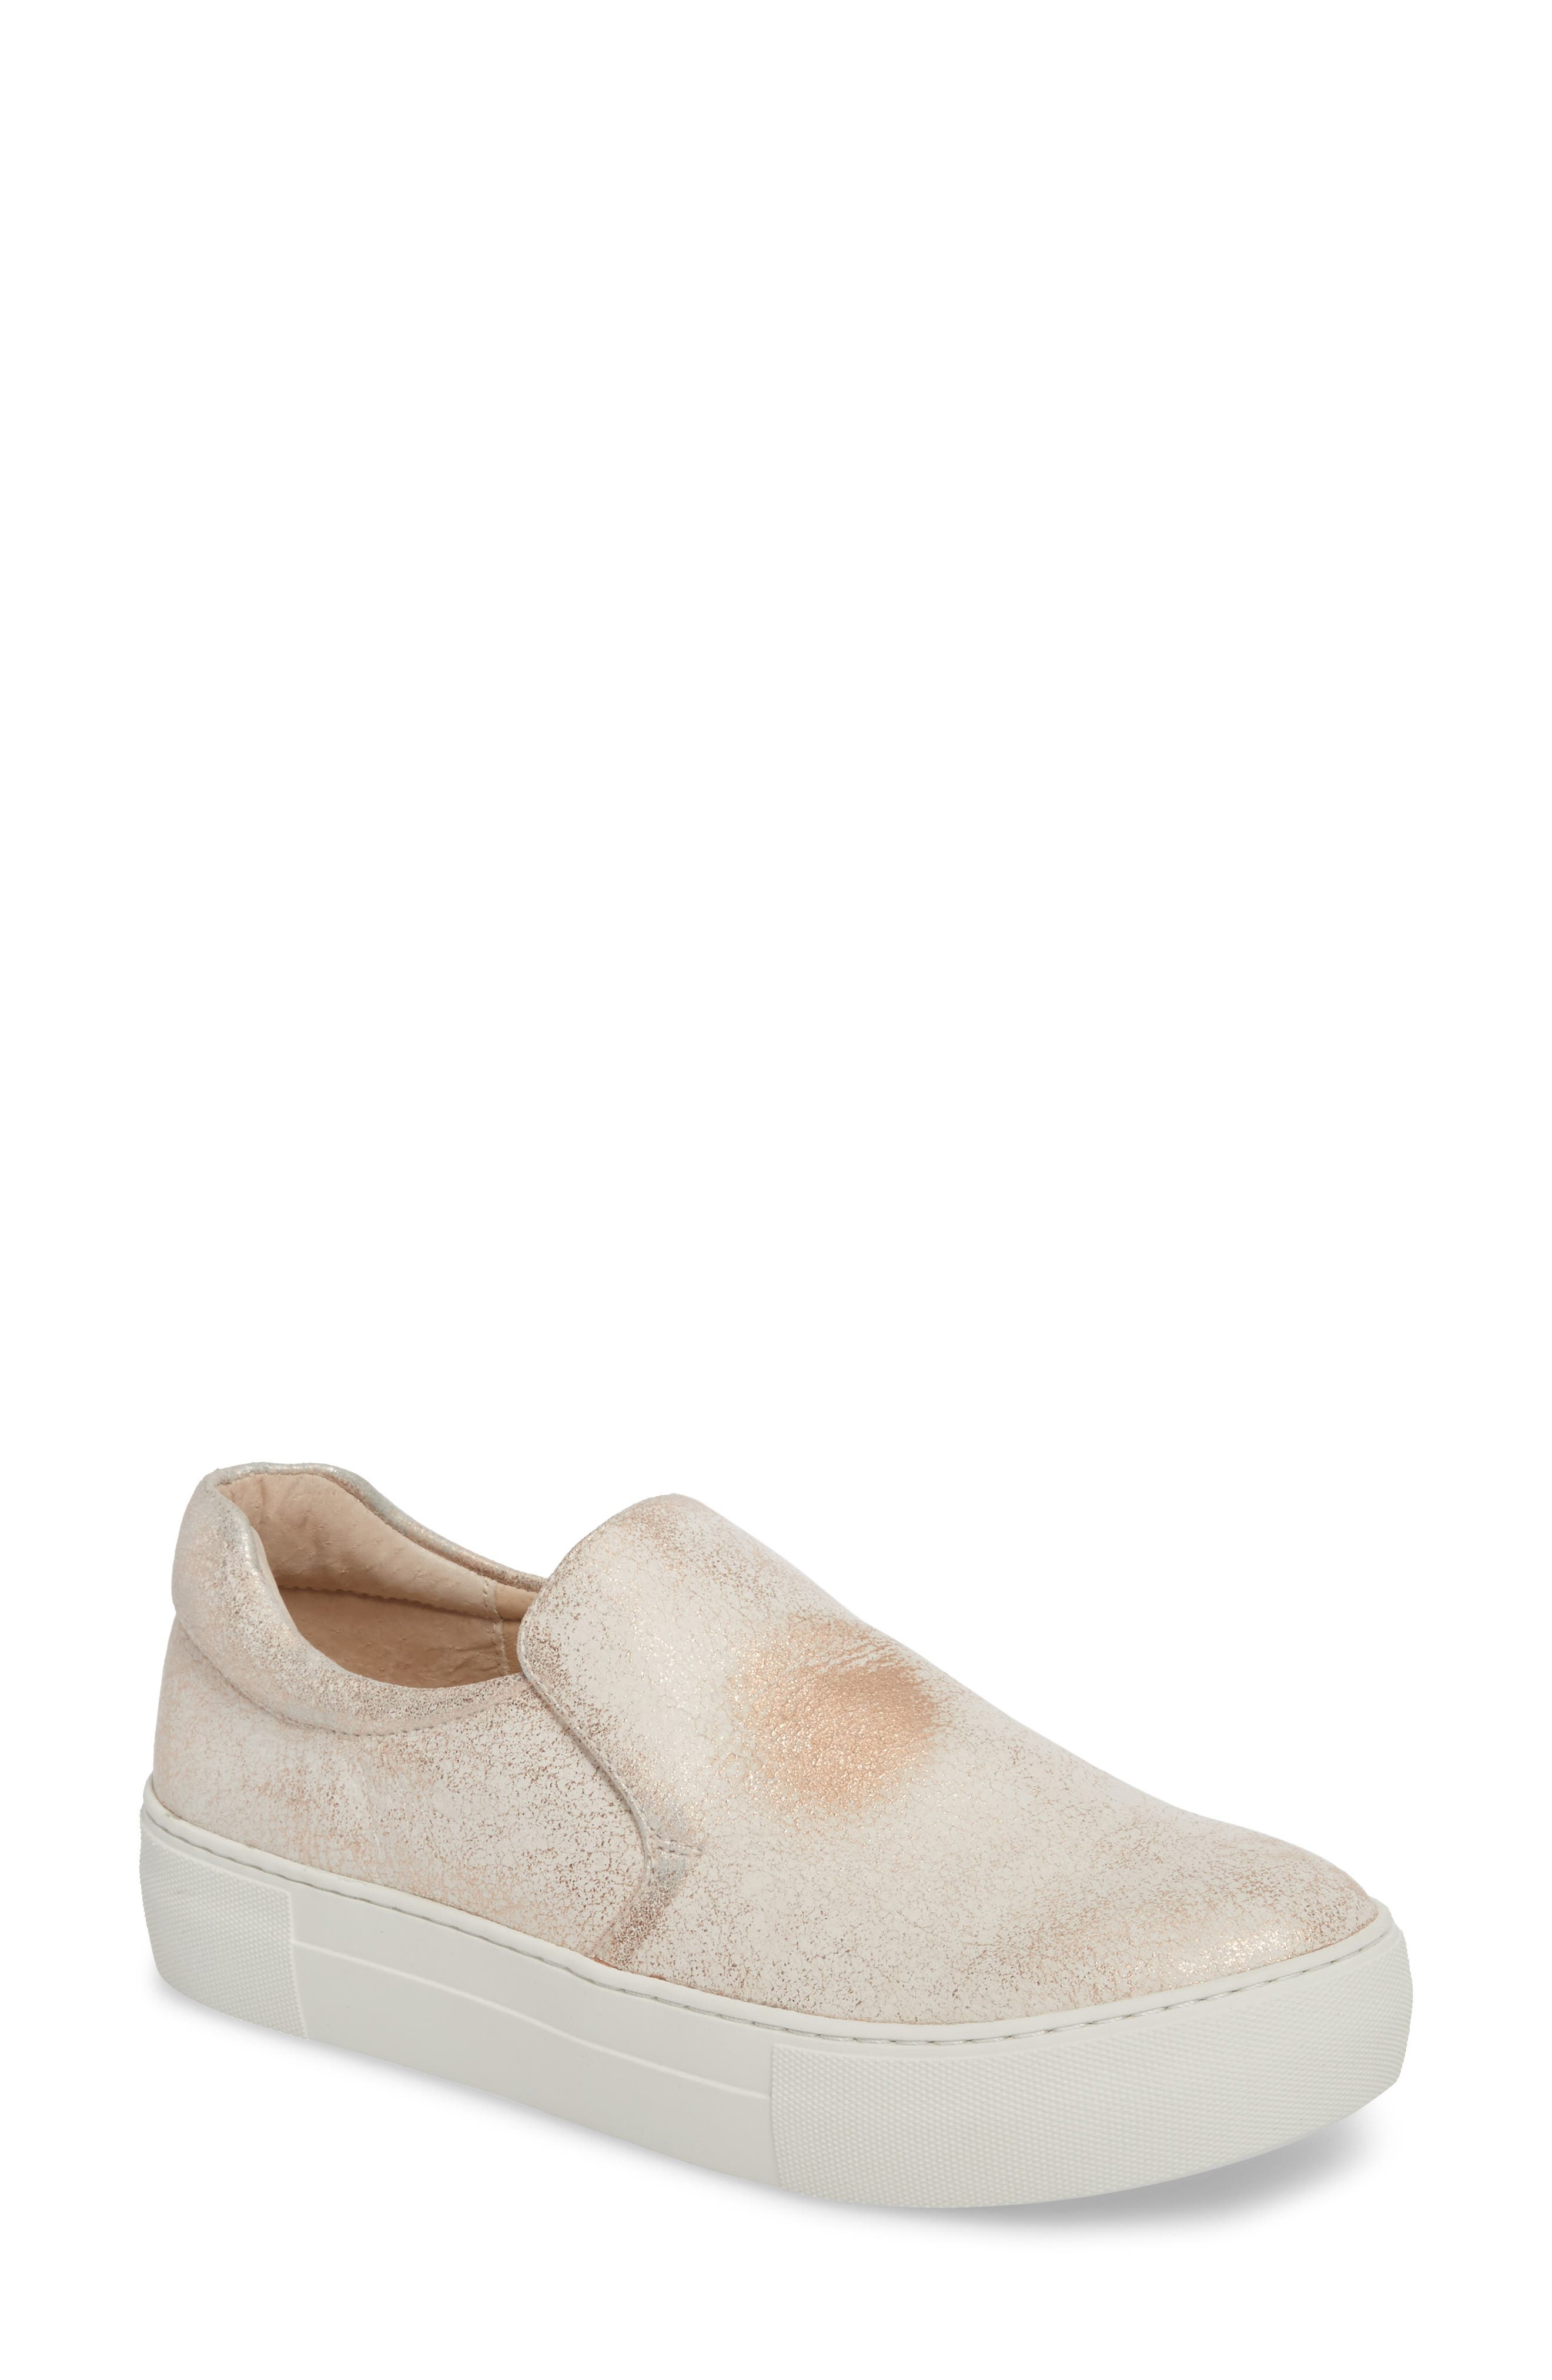 Acer Slip-On Sneaker,                             Main thumbnail 1, color,                             SOFT PINK SUEDE